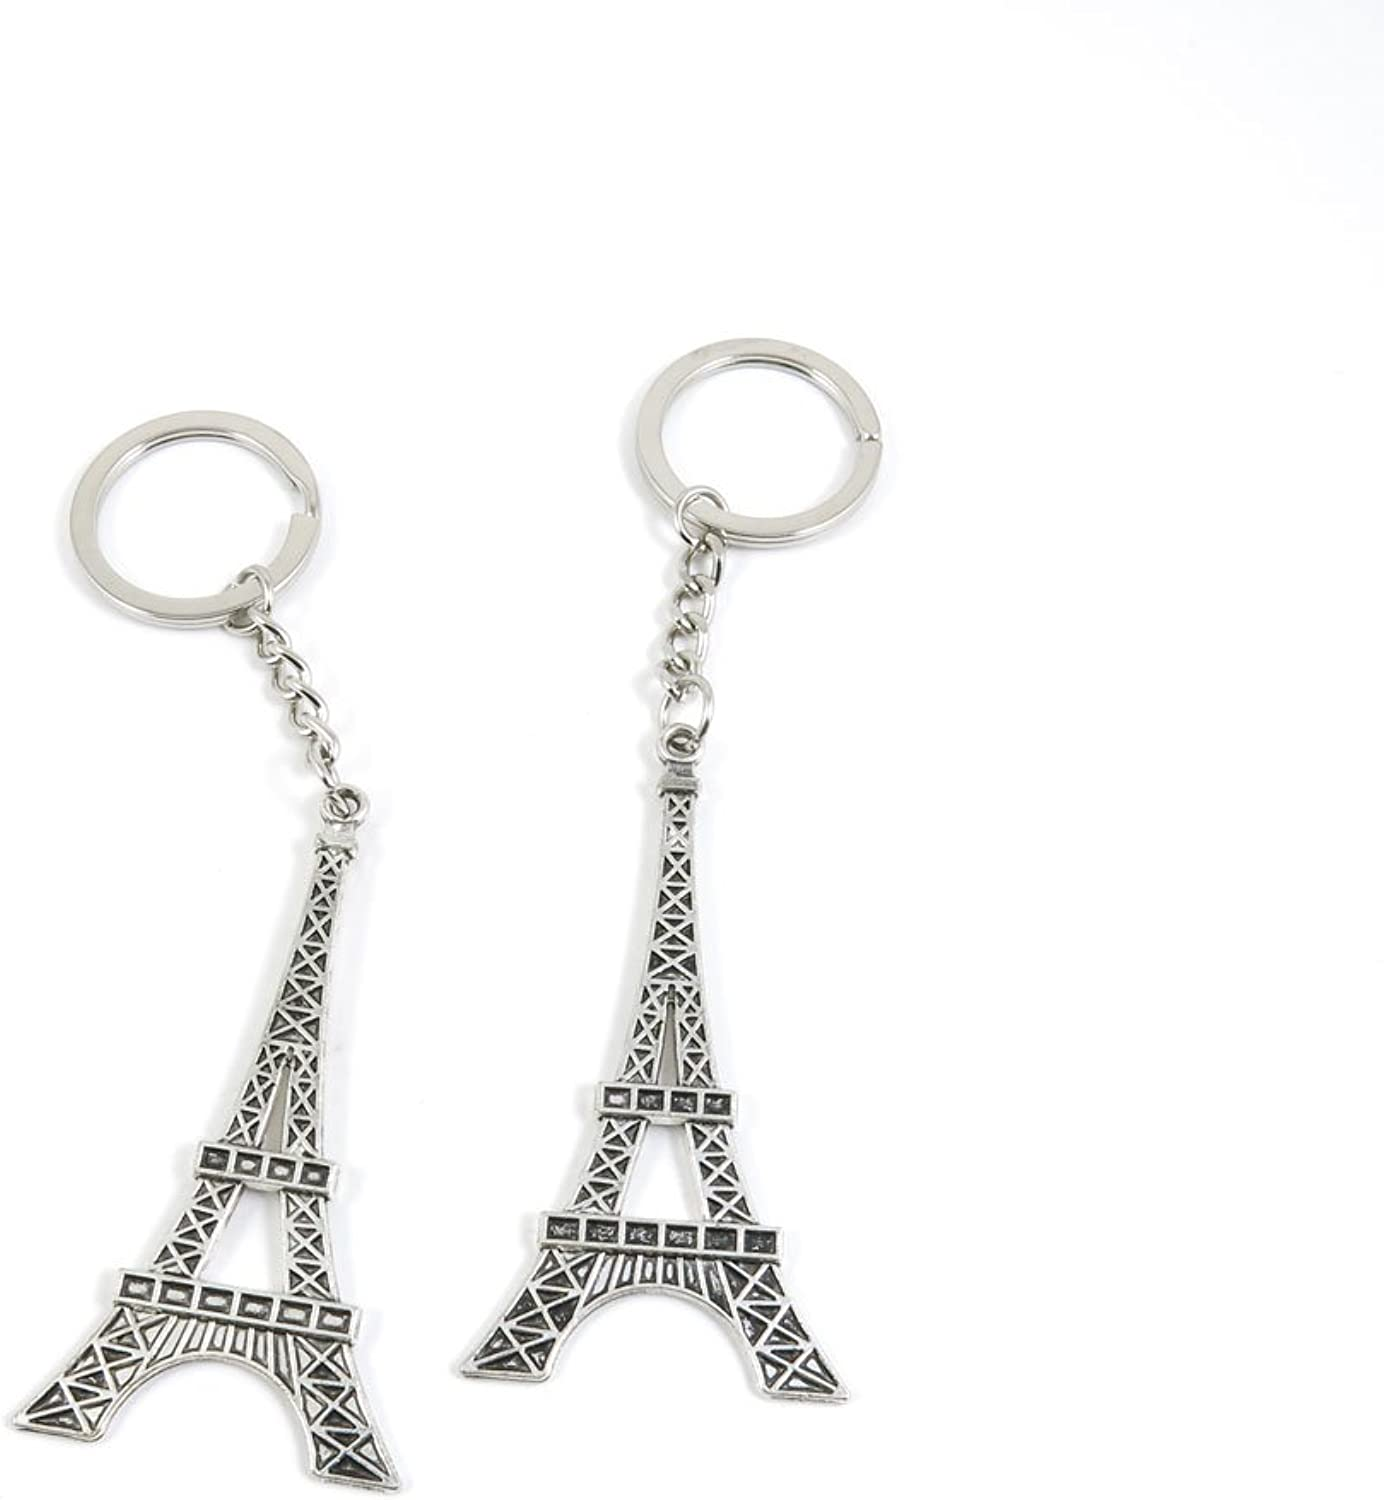 100 Pieces Keychain Keyring Door Car Key Chain Ring Tag Charms Bulk Supply Jewelry Making Clasp Findings T0YV1U Paris Eiffel Tower